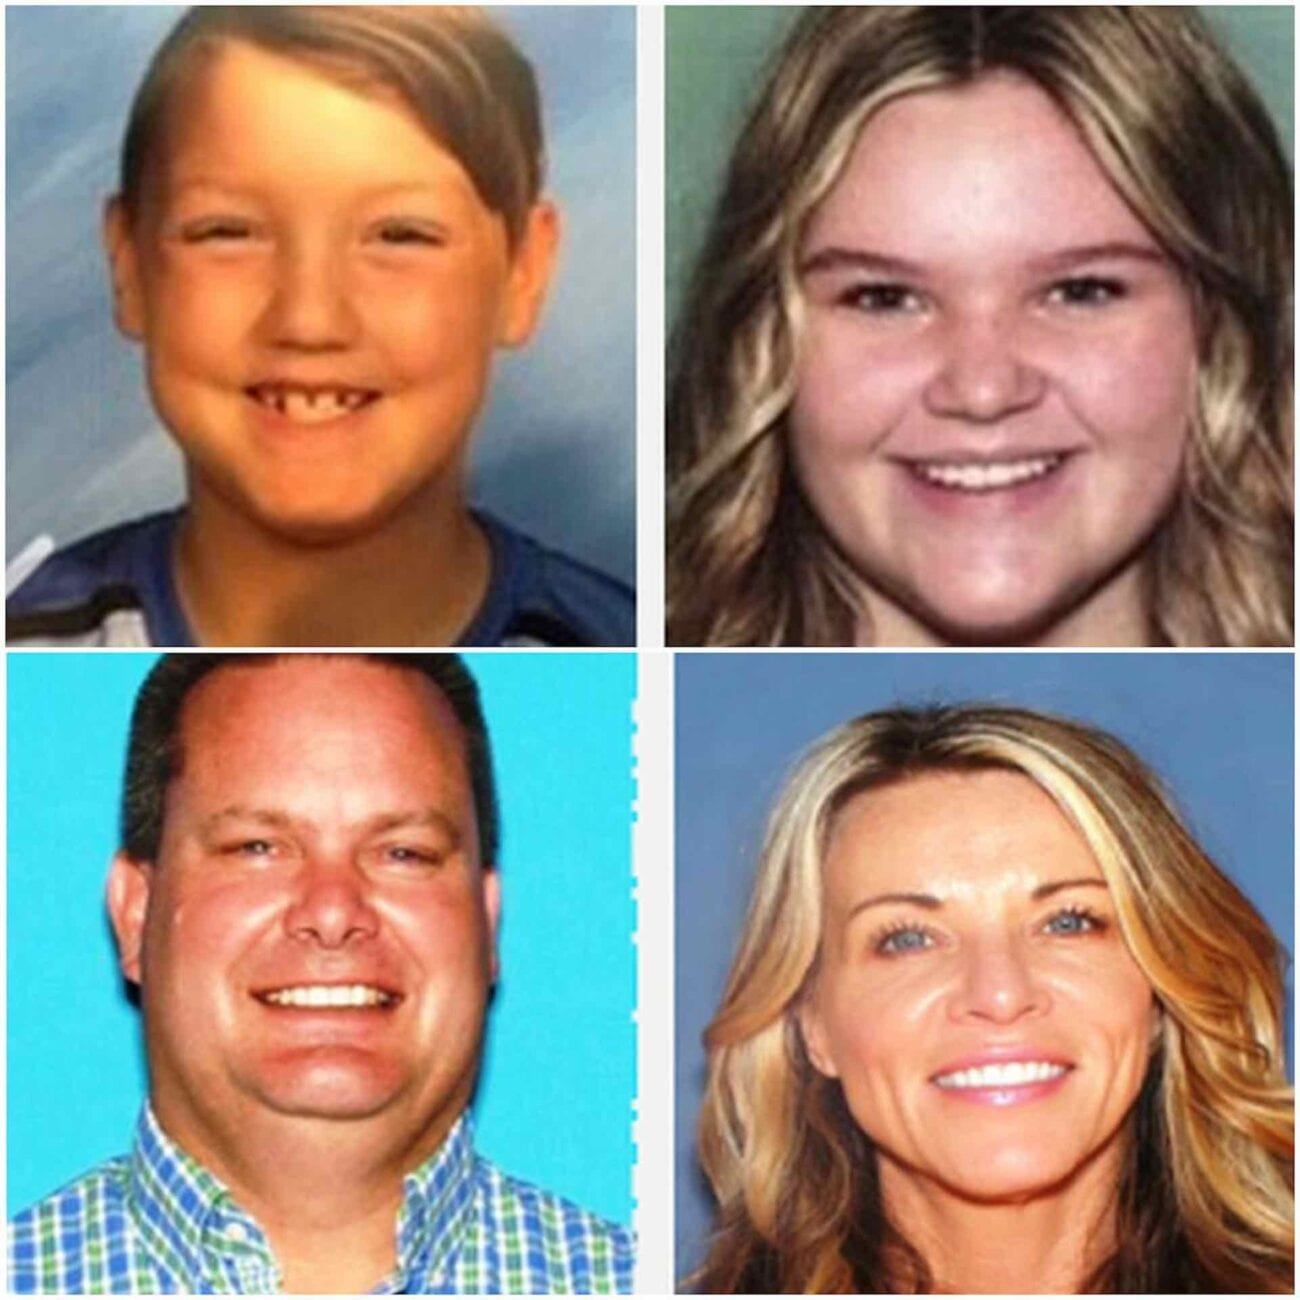 Lori Vallow and Chad Daybell are are suspected of killing both of Vallow's children. New updates have been reported in the case.